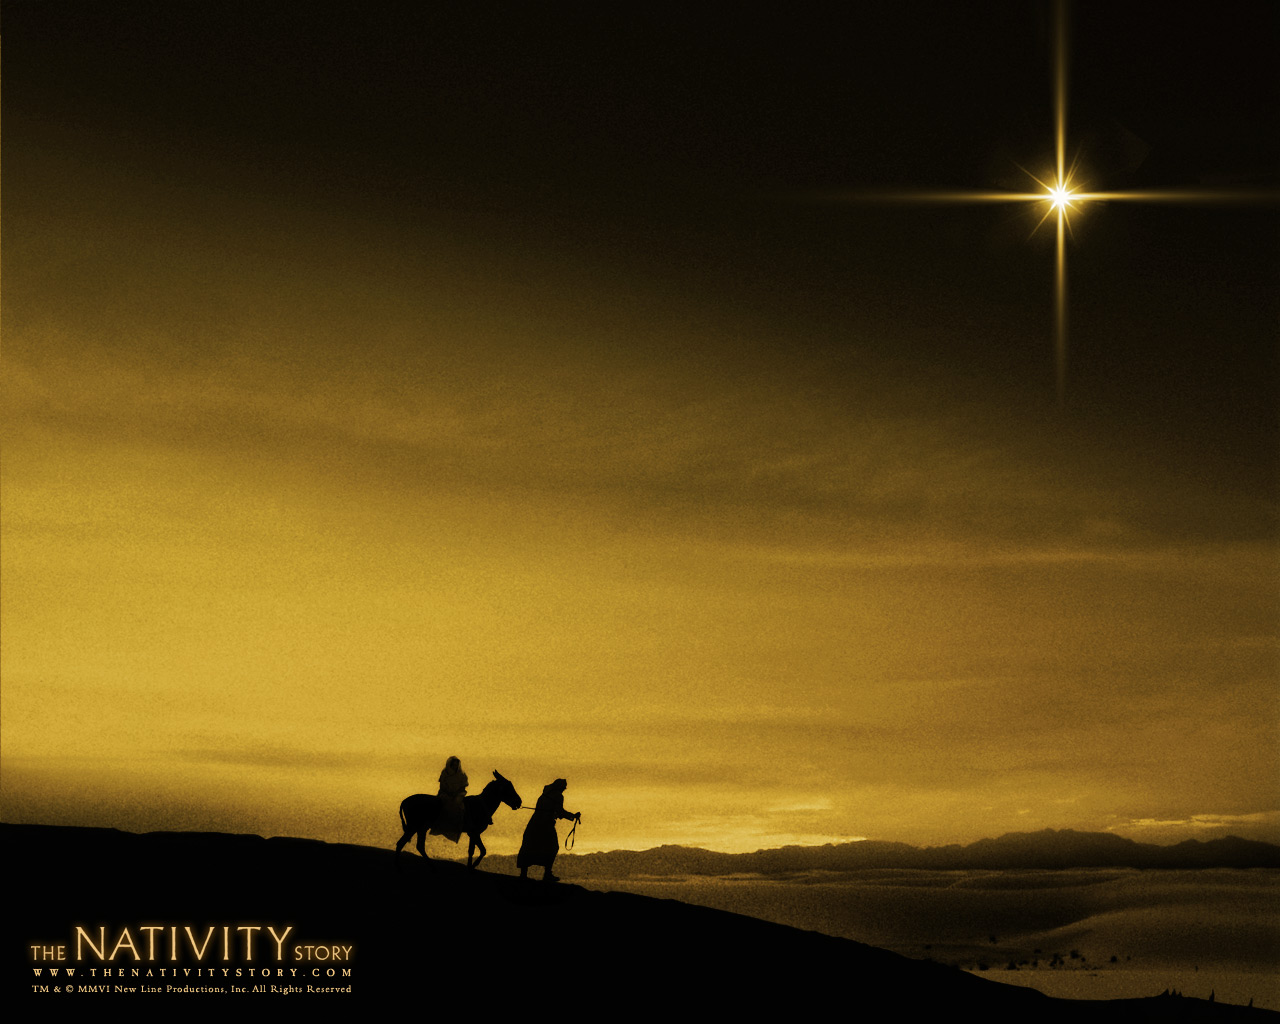 the nativity story free desktop wallpapers for hd